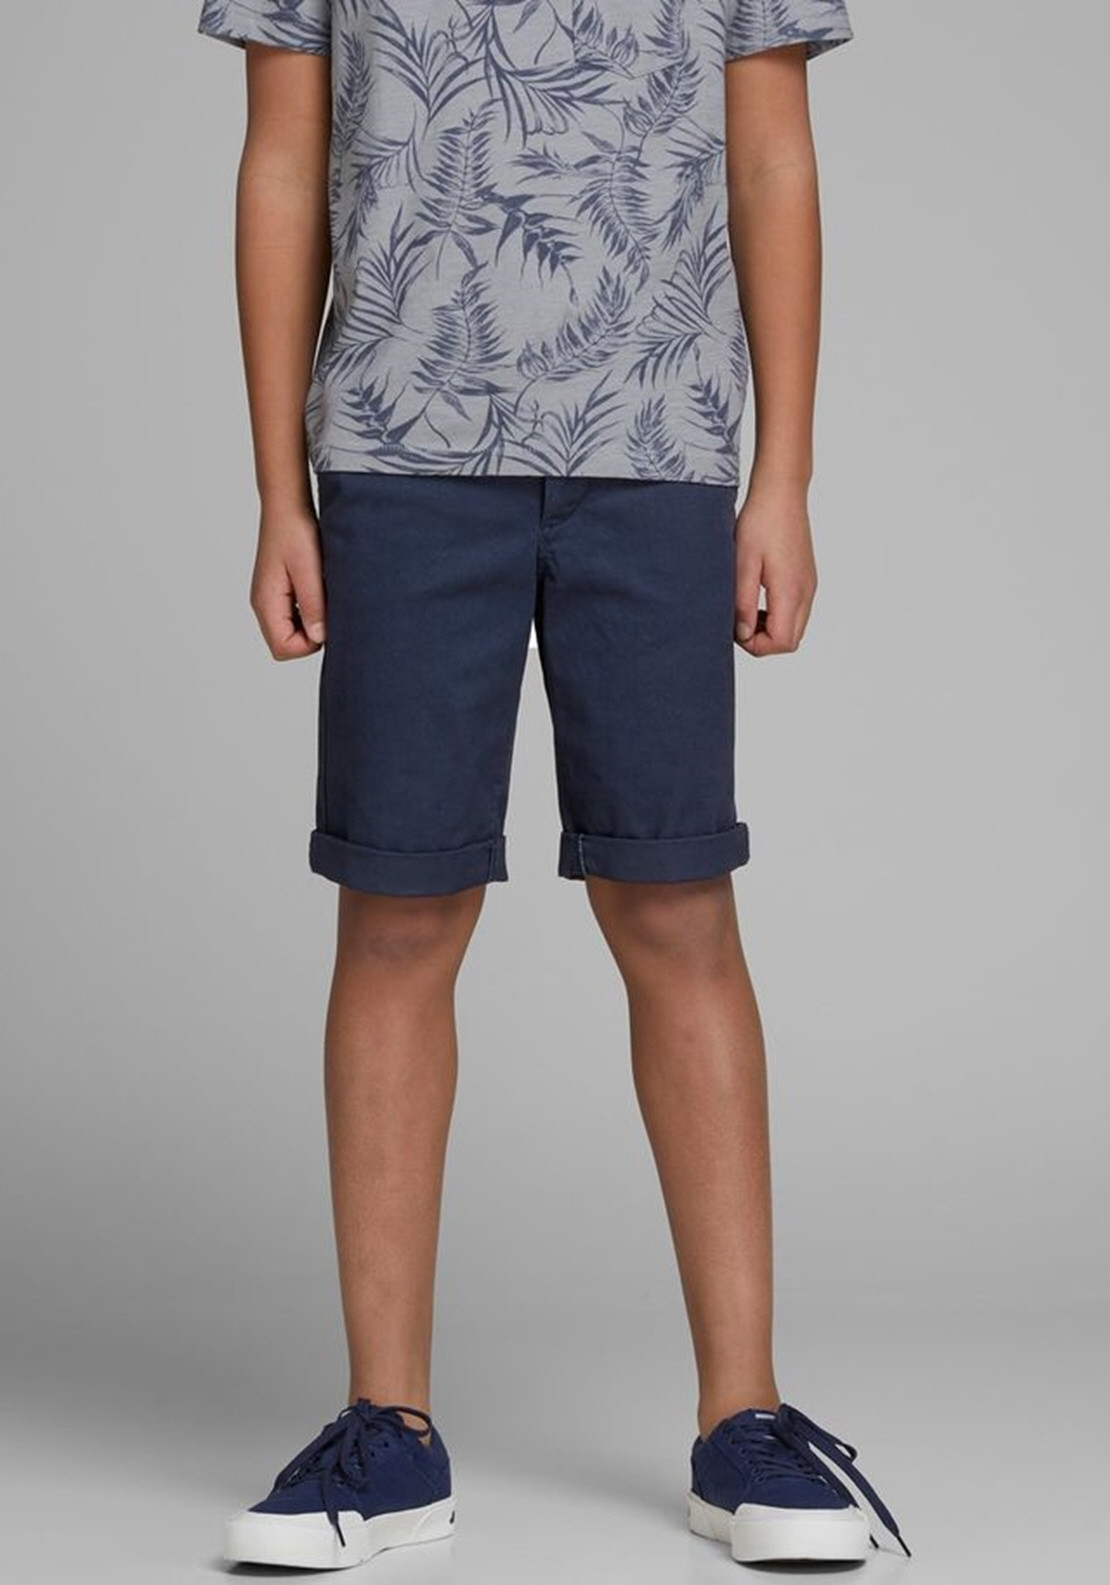 1dd9d63575 Jack & Jones Boys Jienzo Chino Shorts, Navy | McElhinneys